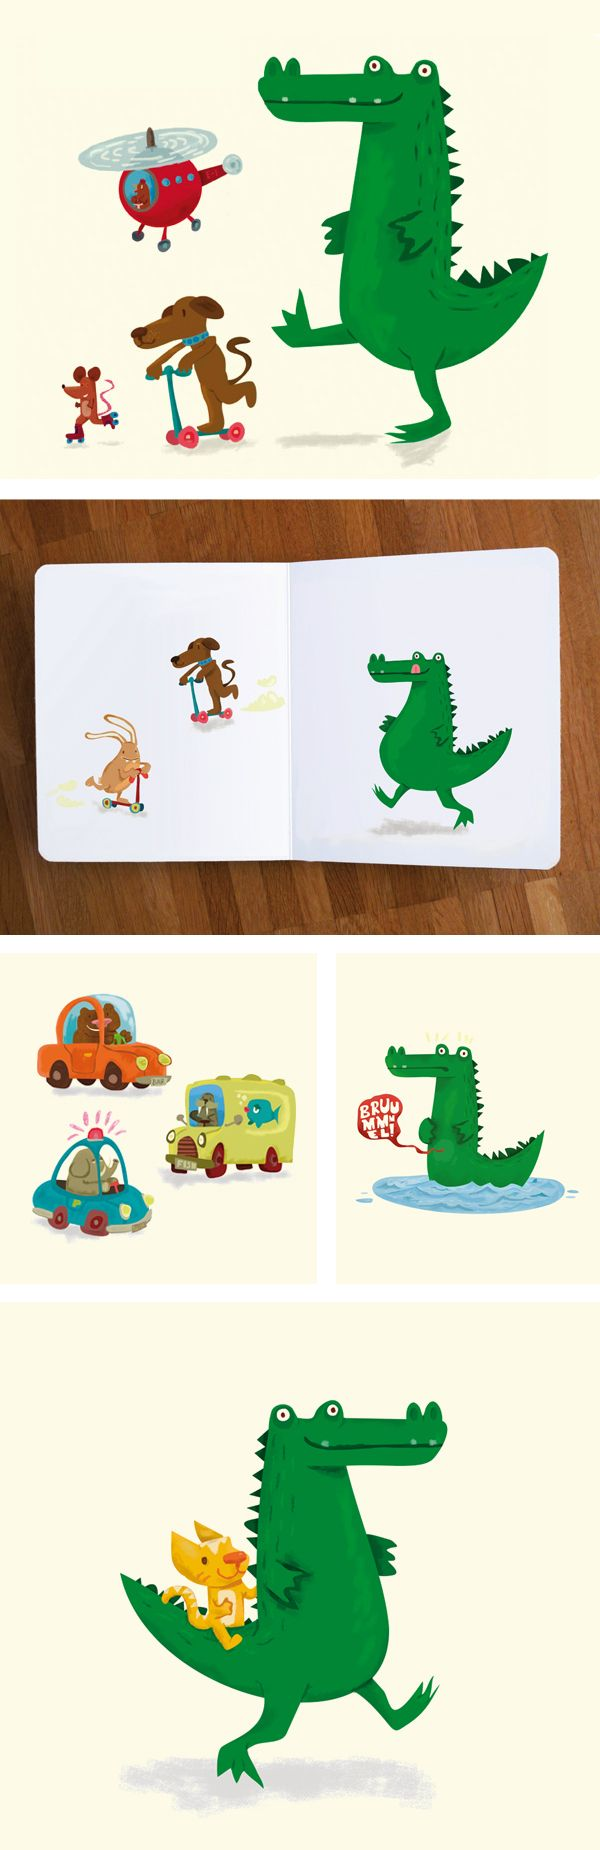 The hungry Crocodile by Jamie Oliver Aspinall, via Behance